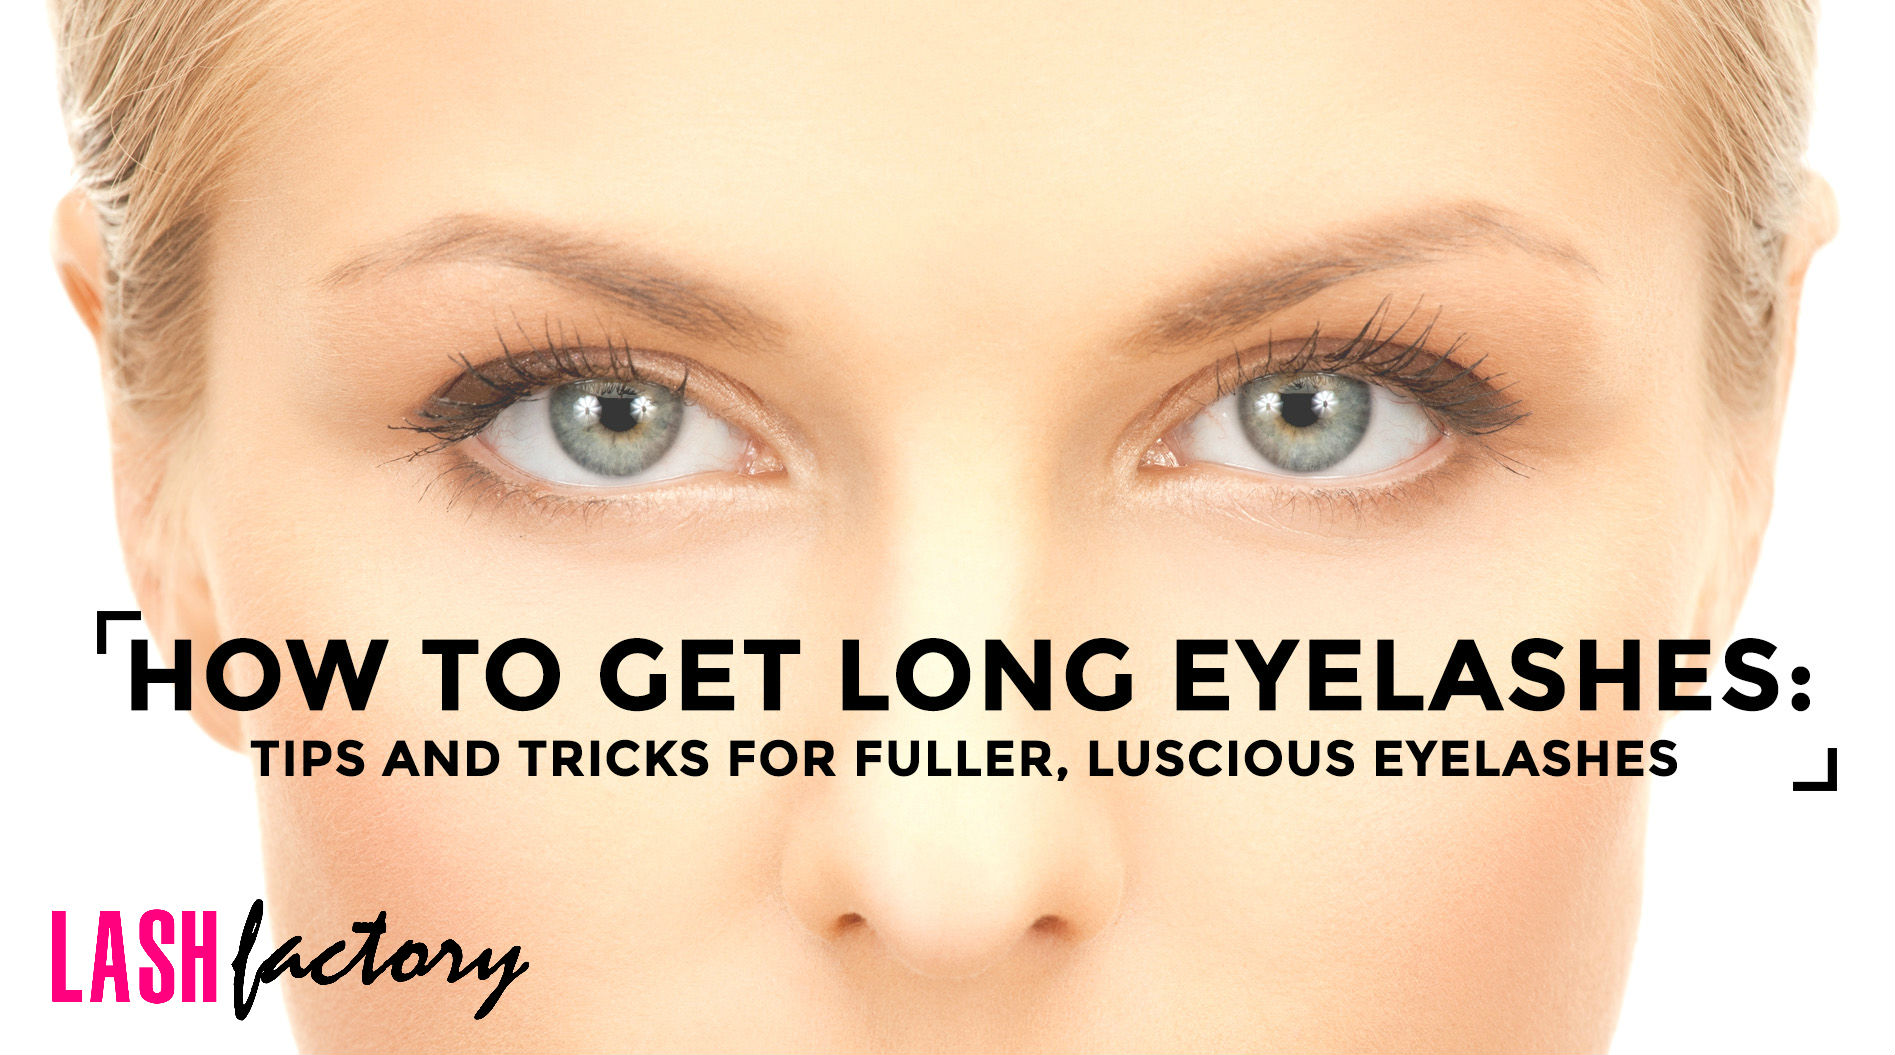 d7d5de53c6b How to Get Long Eyelashes: Tips and Tricks for Fuller, Luscious Eyelashes